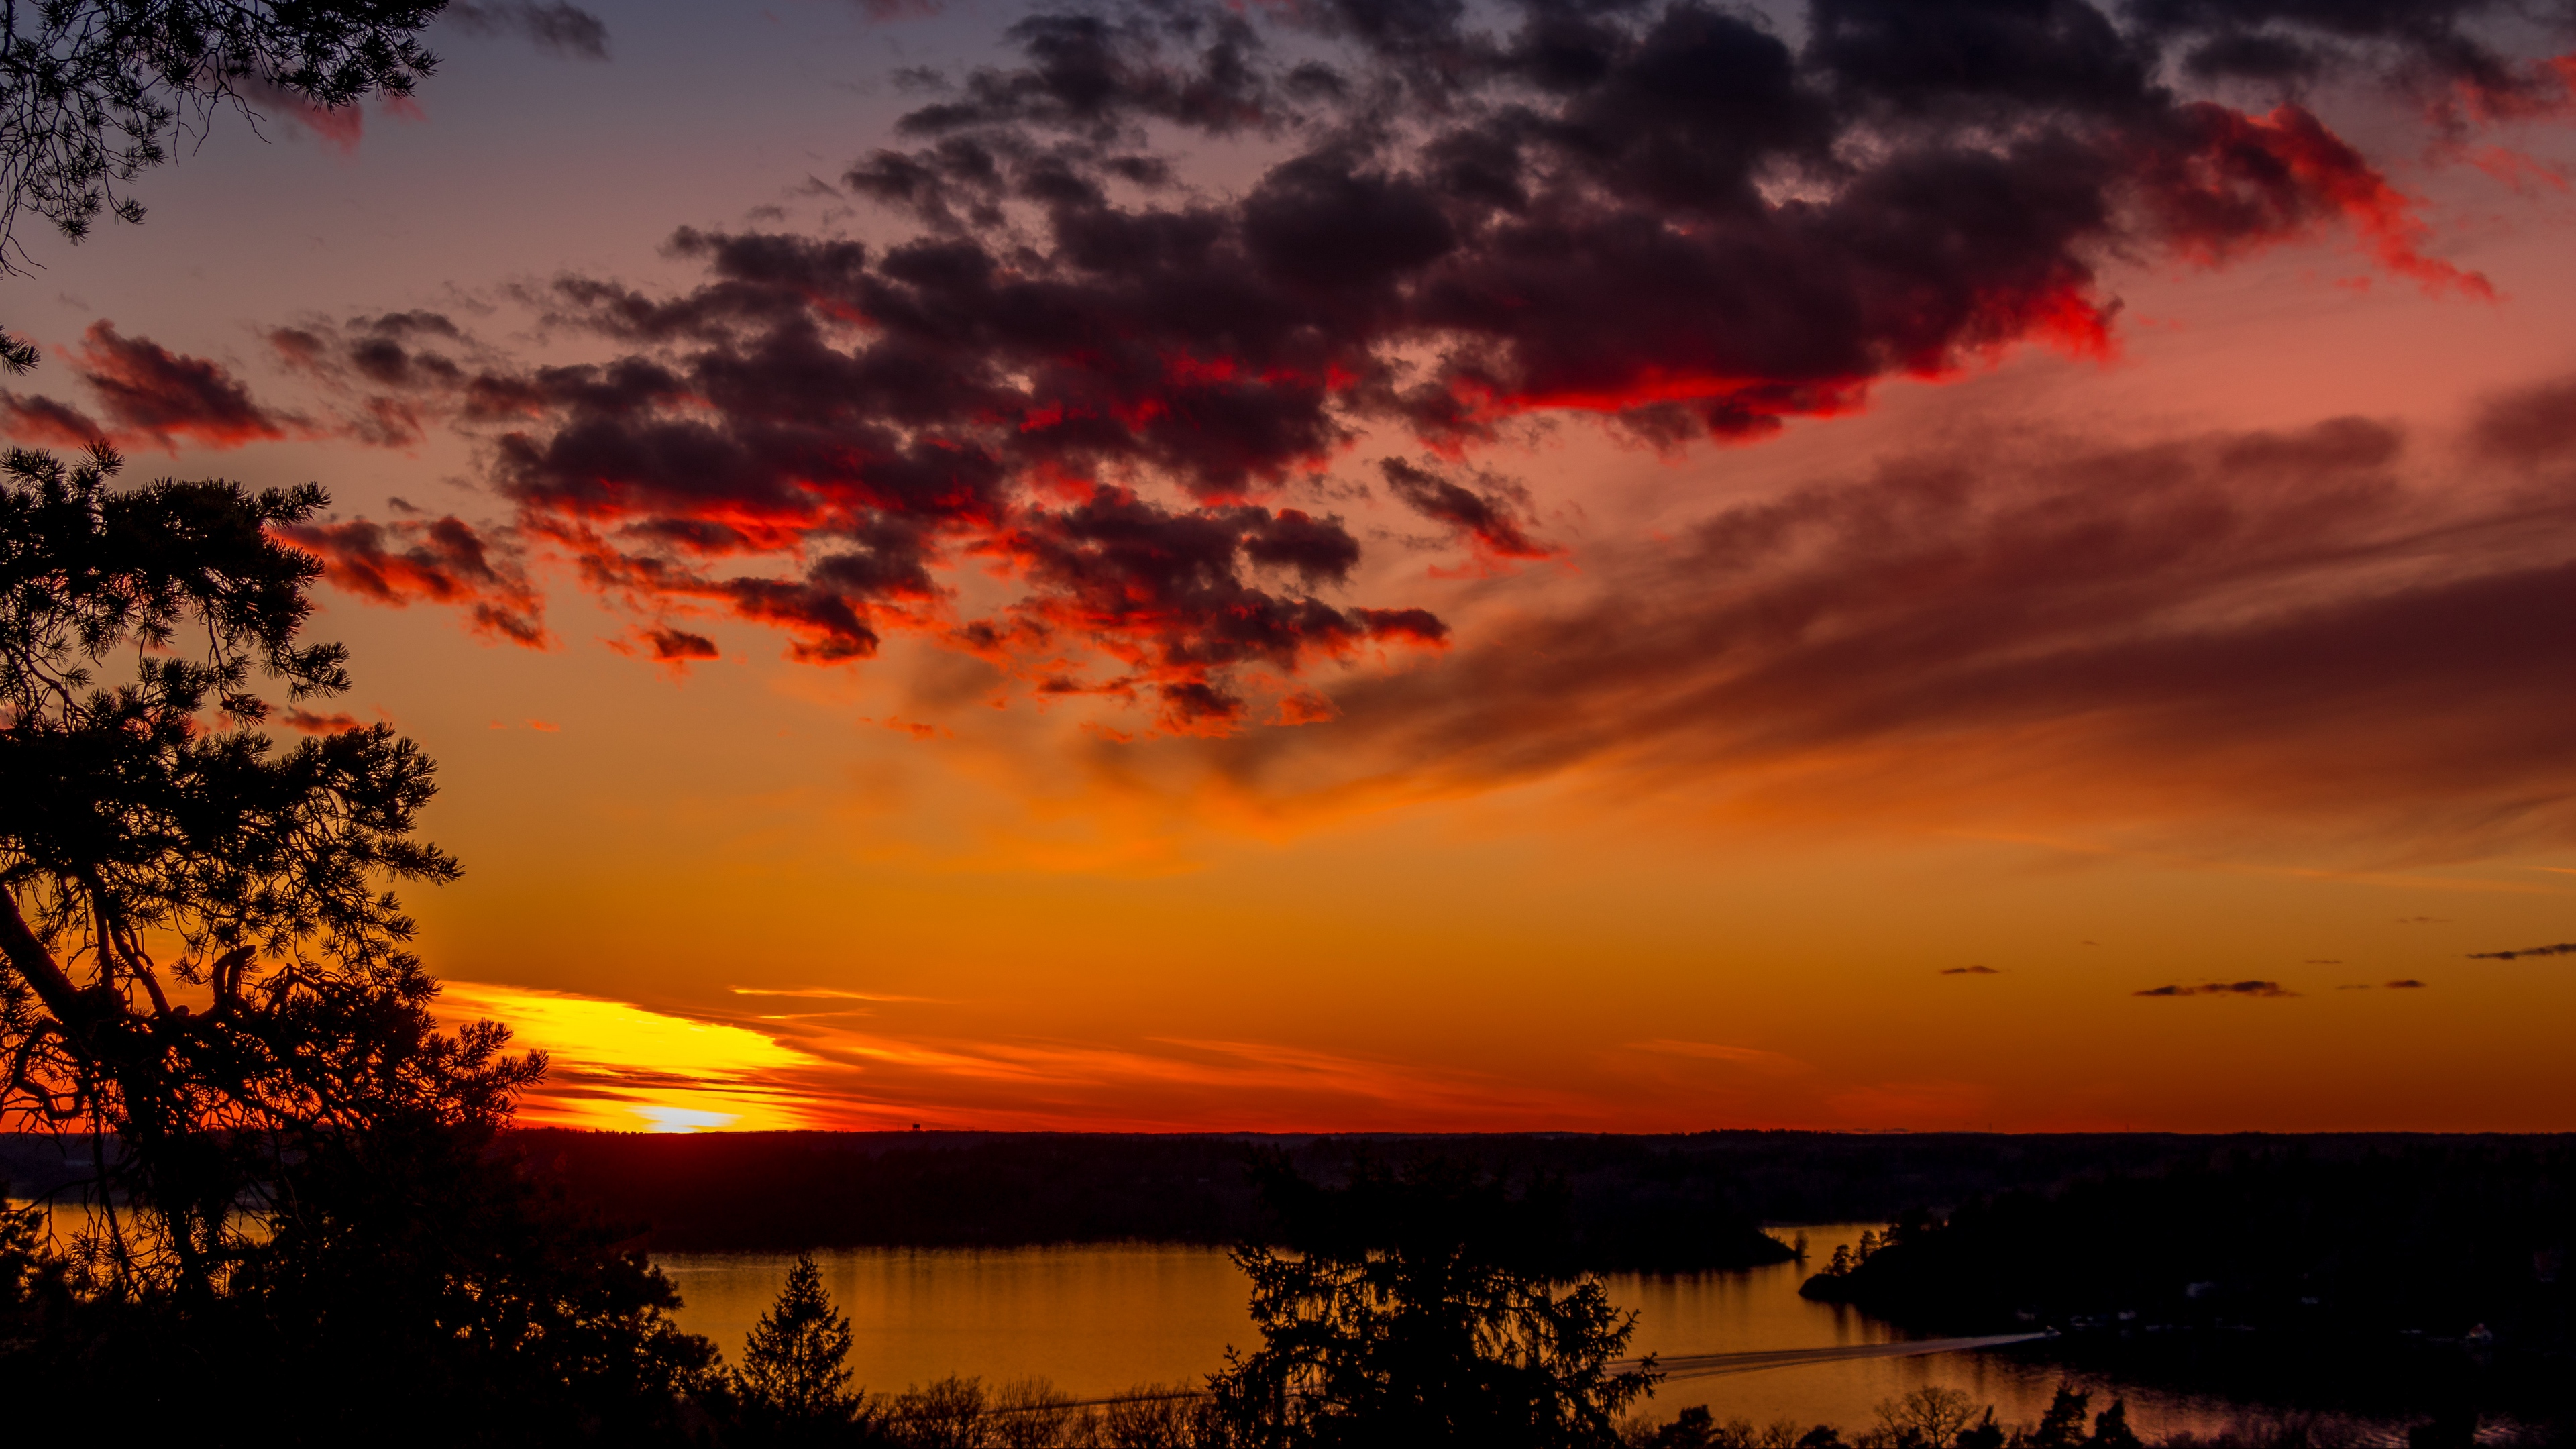 trees lake sunset clouds sky evening 4k 1541113516 - trees, lake, sunset, clouds, sky, evening 4k - Trees, sunset, Lake